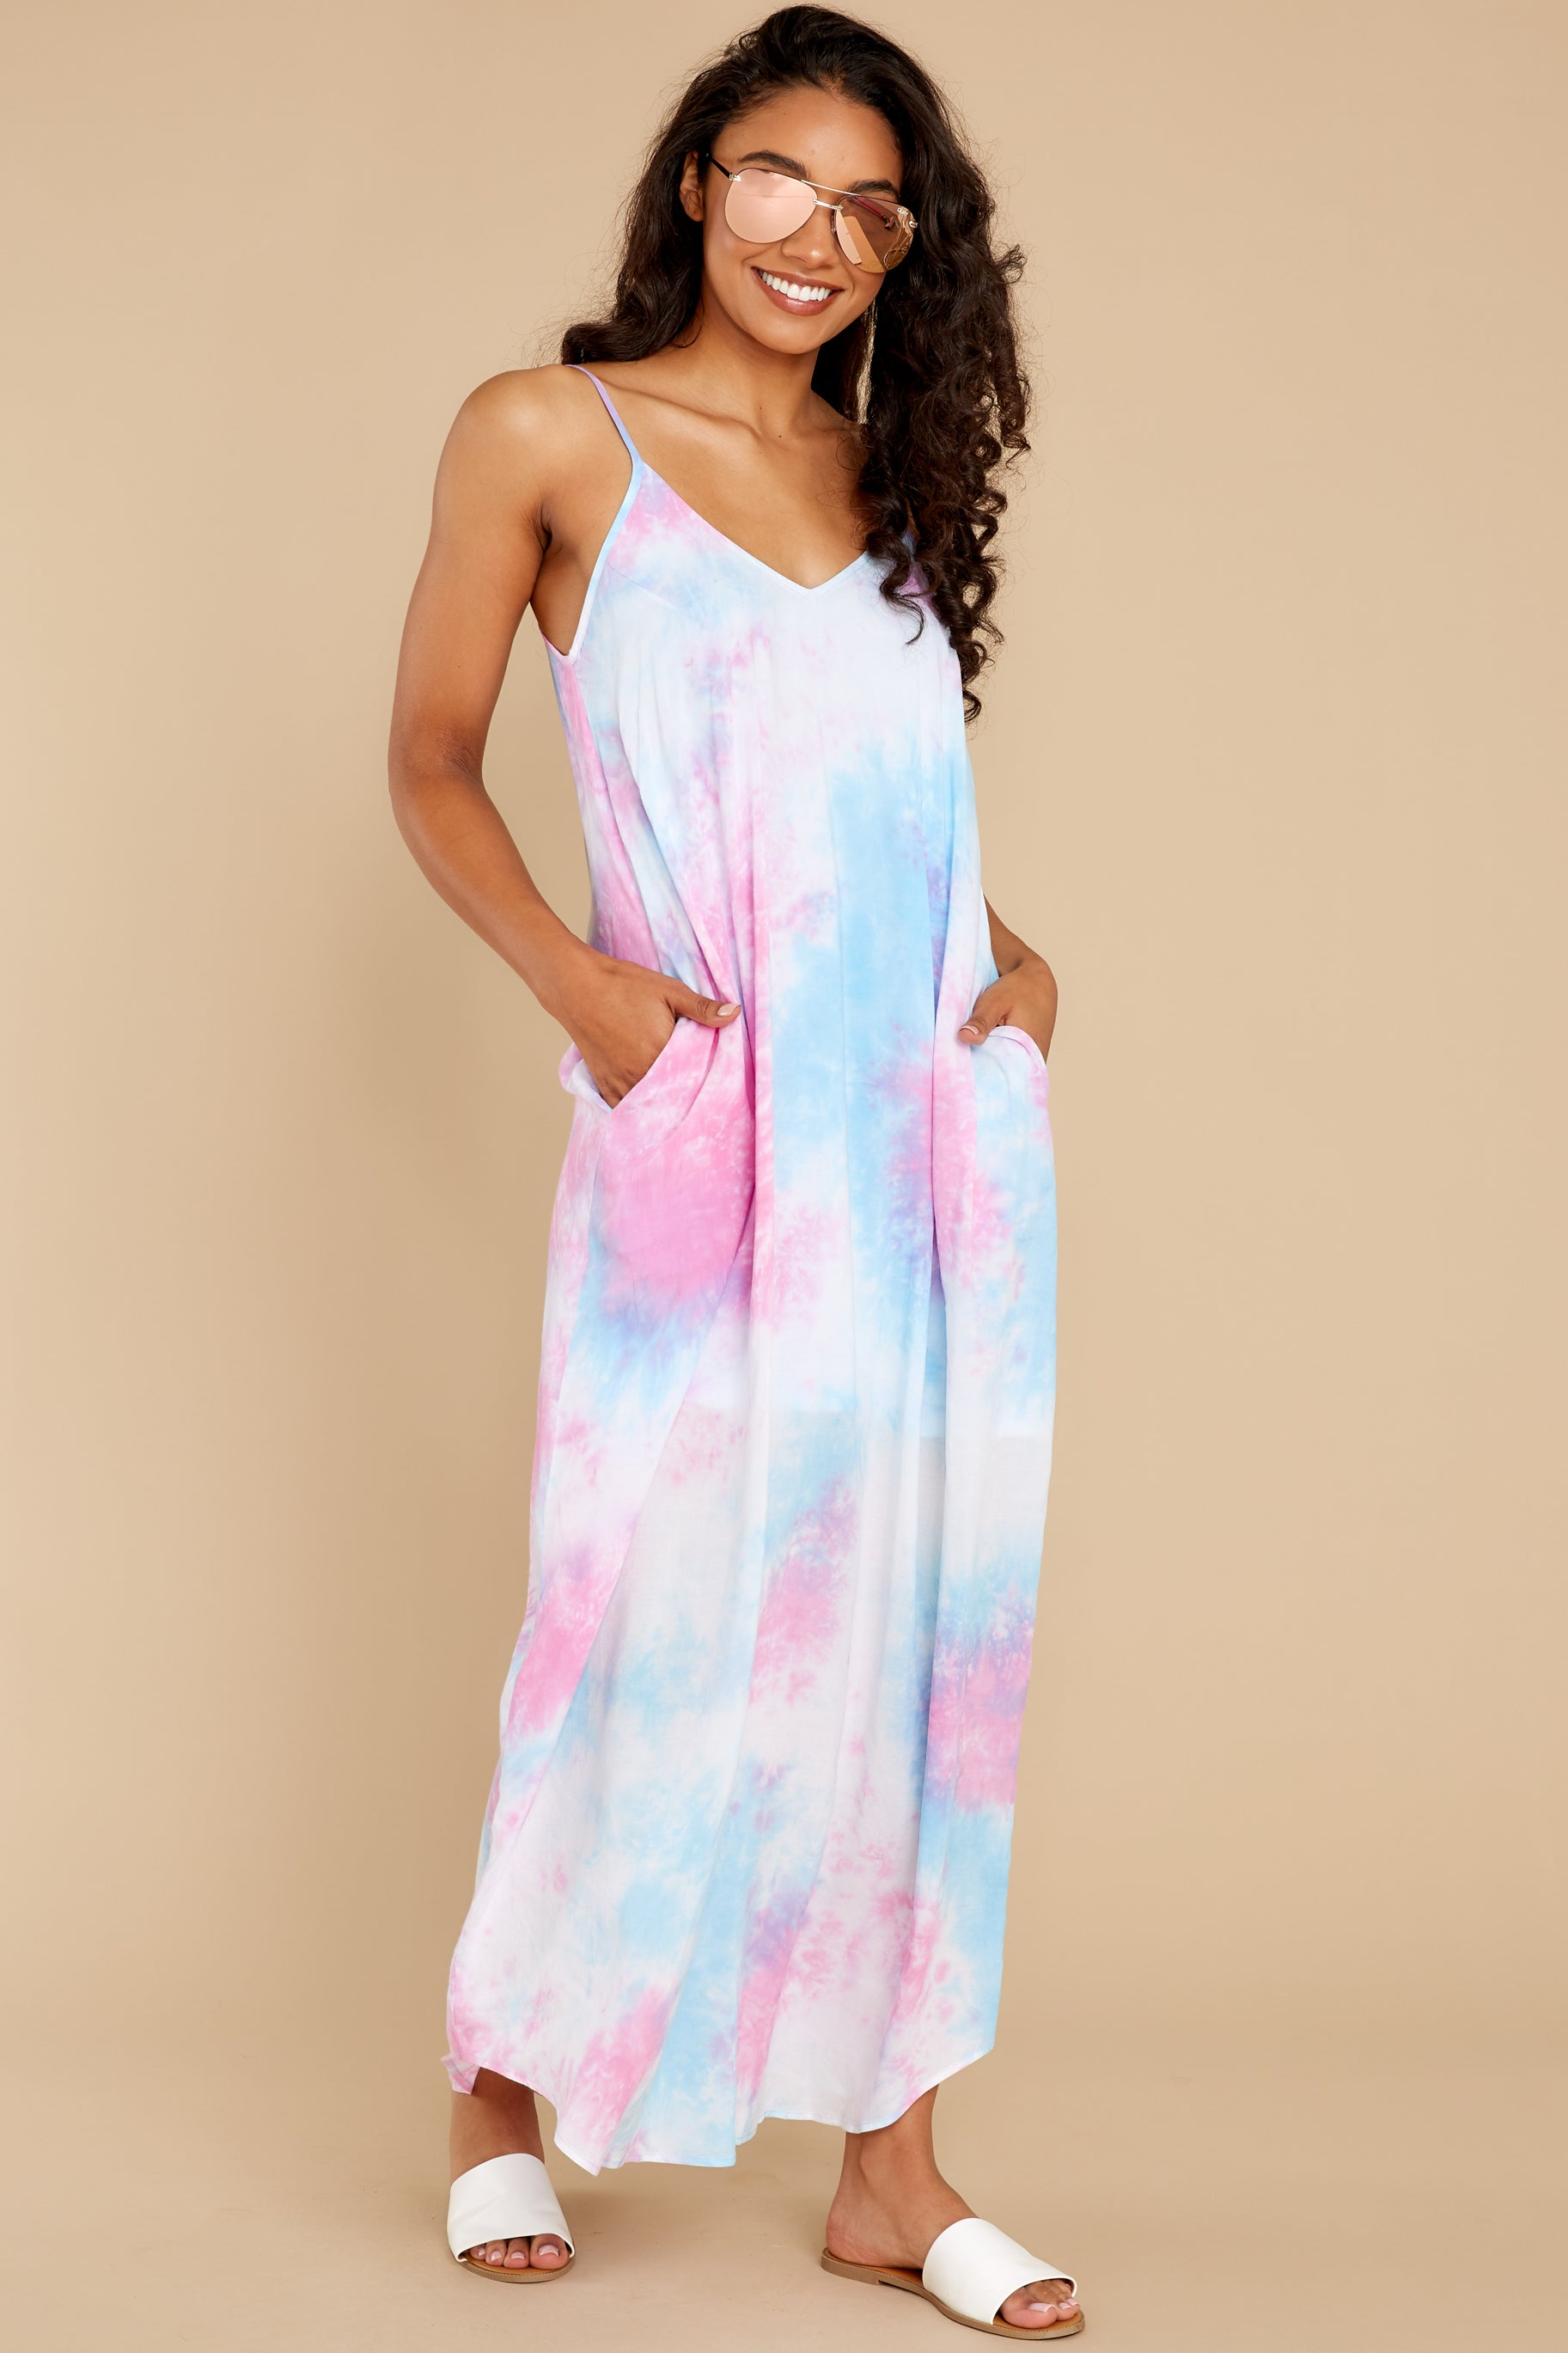 4 Part Of Your Charm Pink Multi Tie Dye Maxi Dress at reddress.com